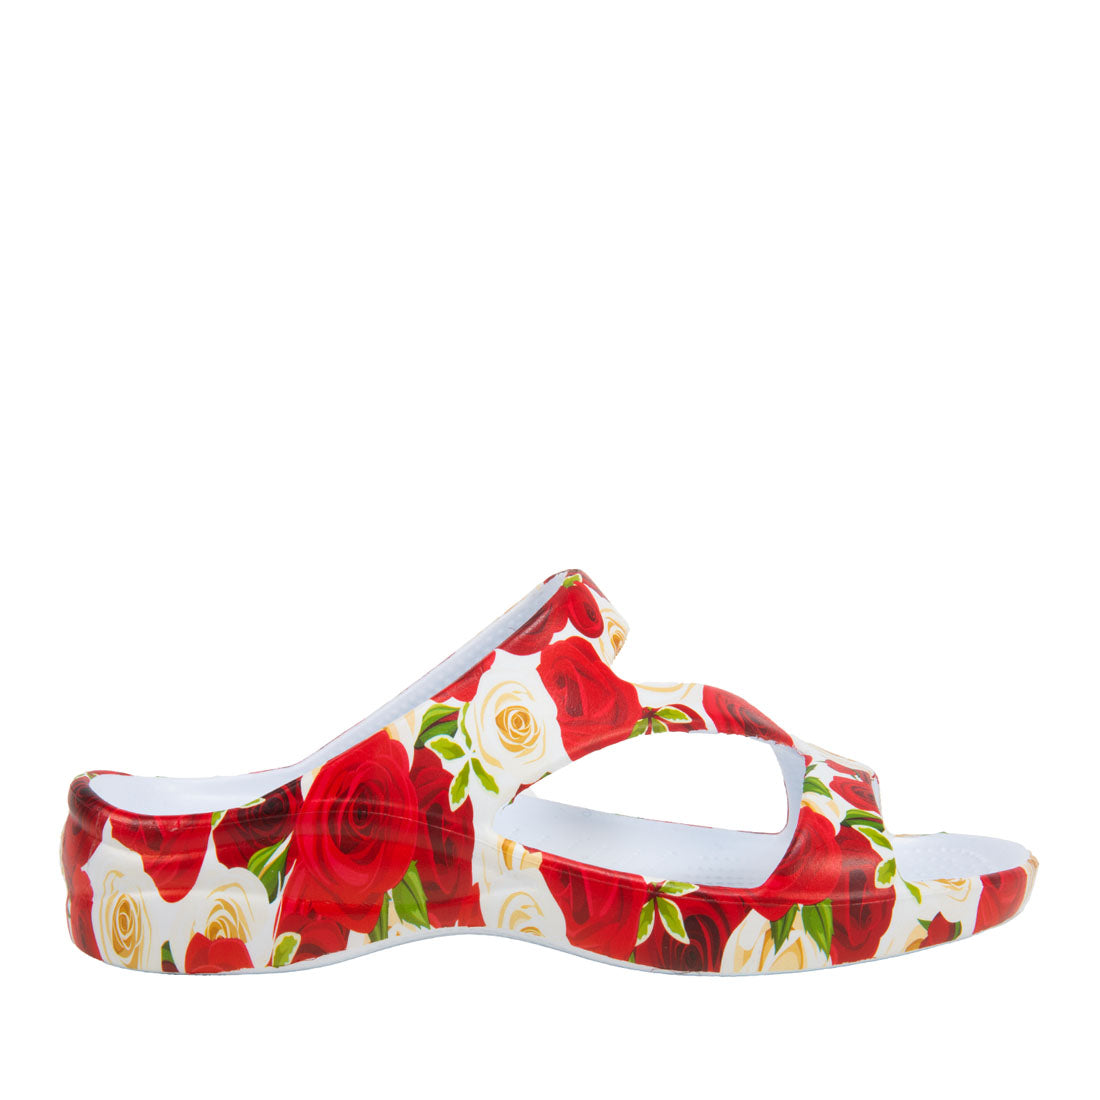 Image of Women's Loudmouth Z Sandals - Rosie